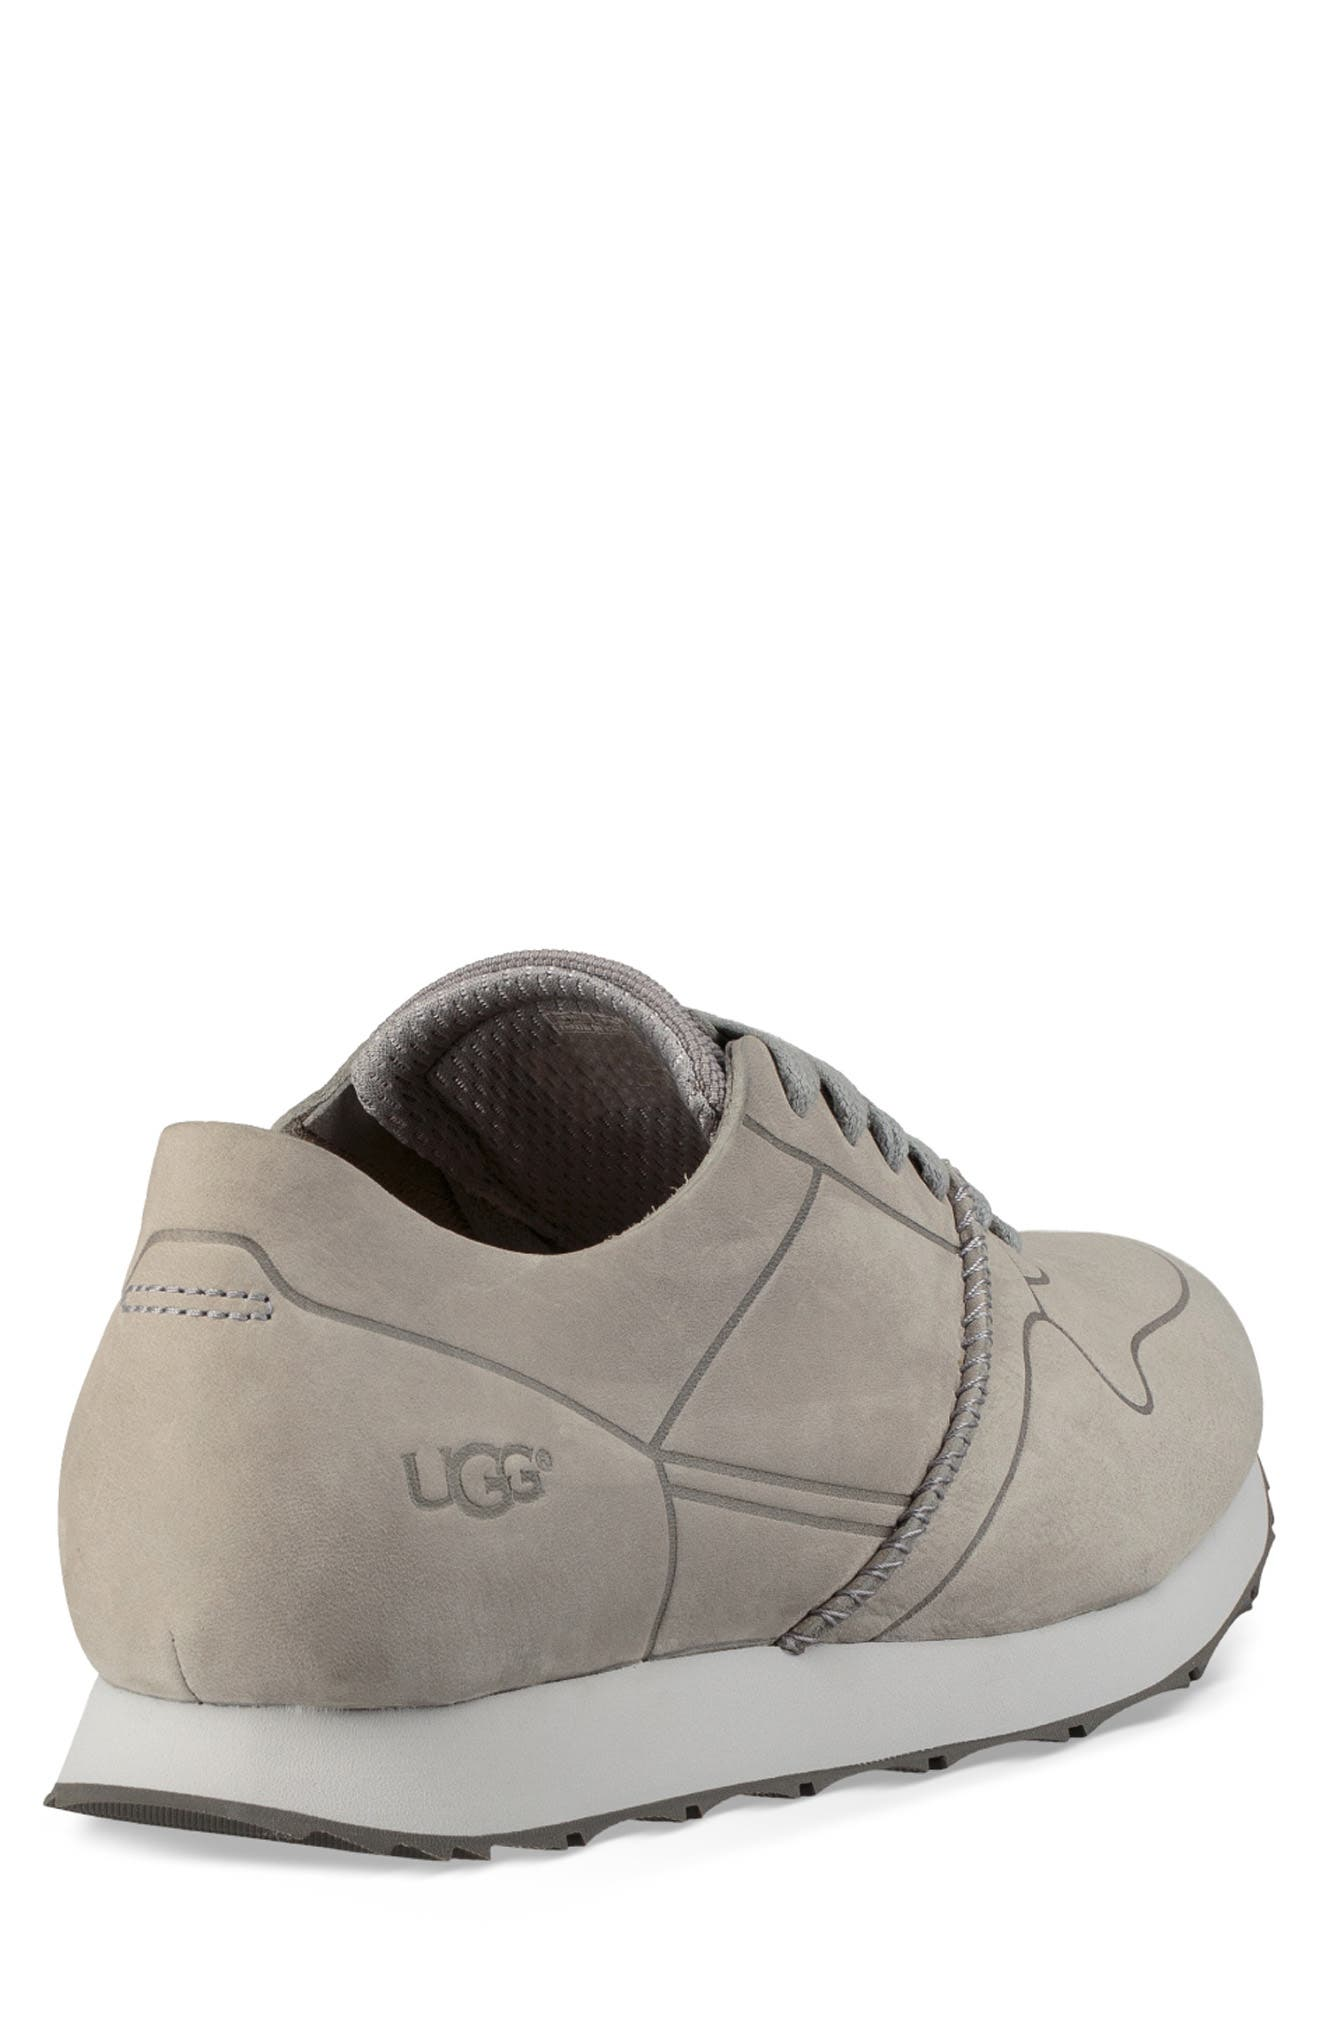 Trigo Unlined Sneaker,                             Alternate thumbnail 2, color,                             024